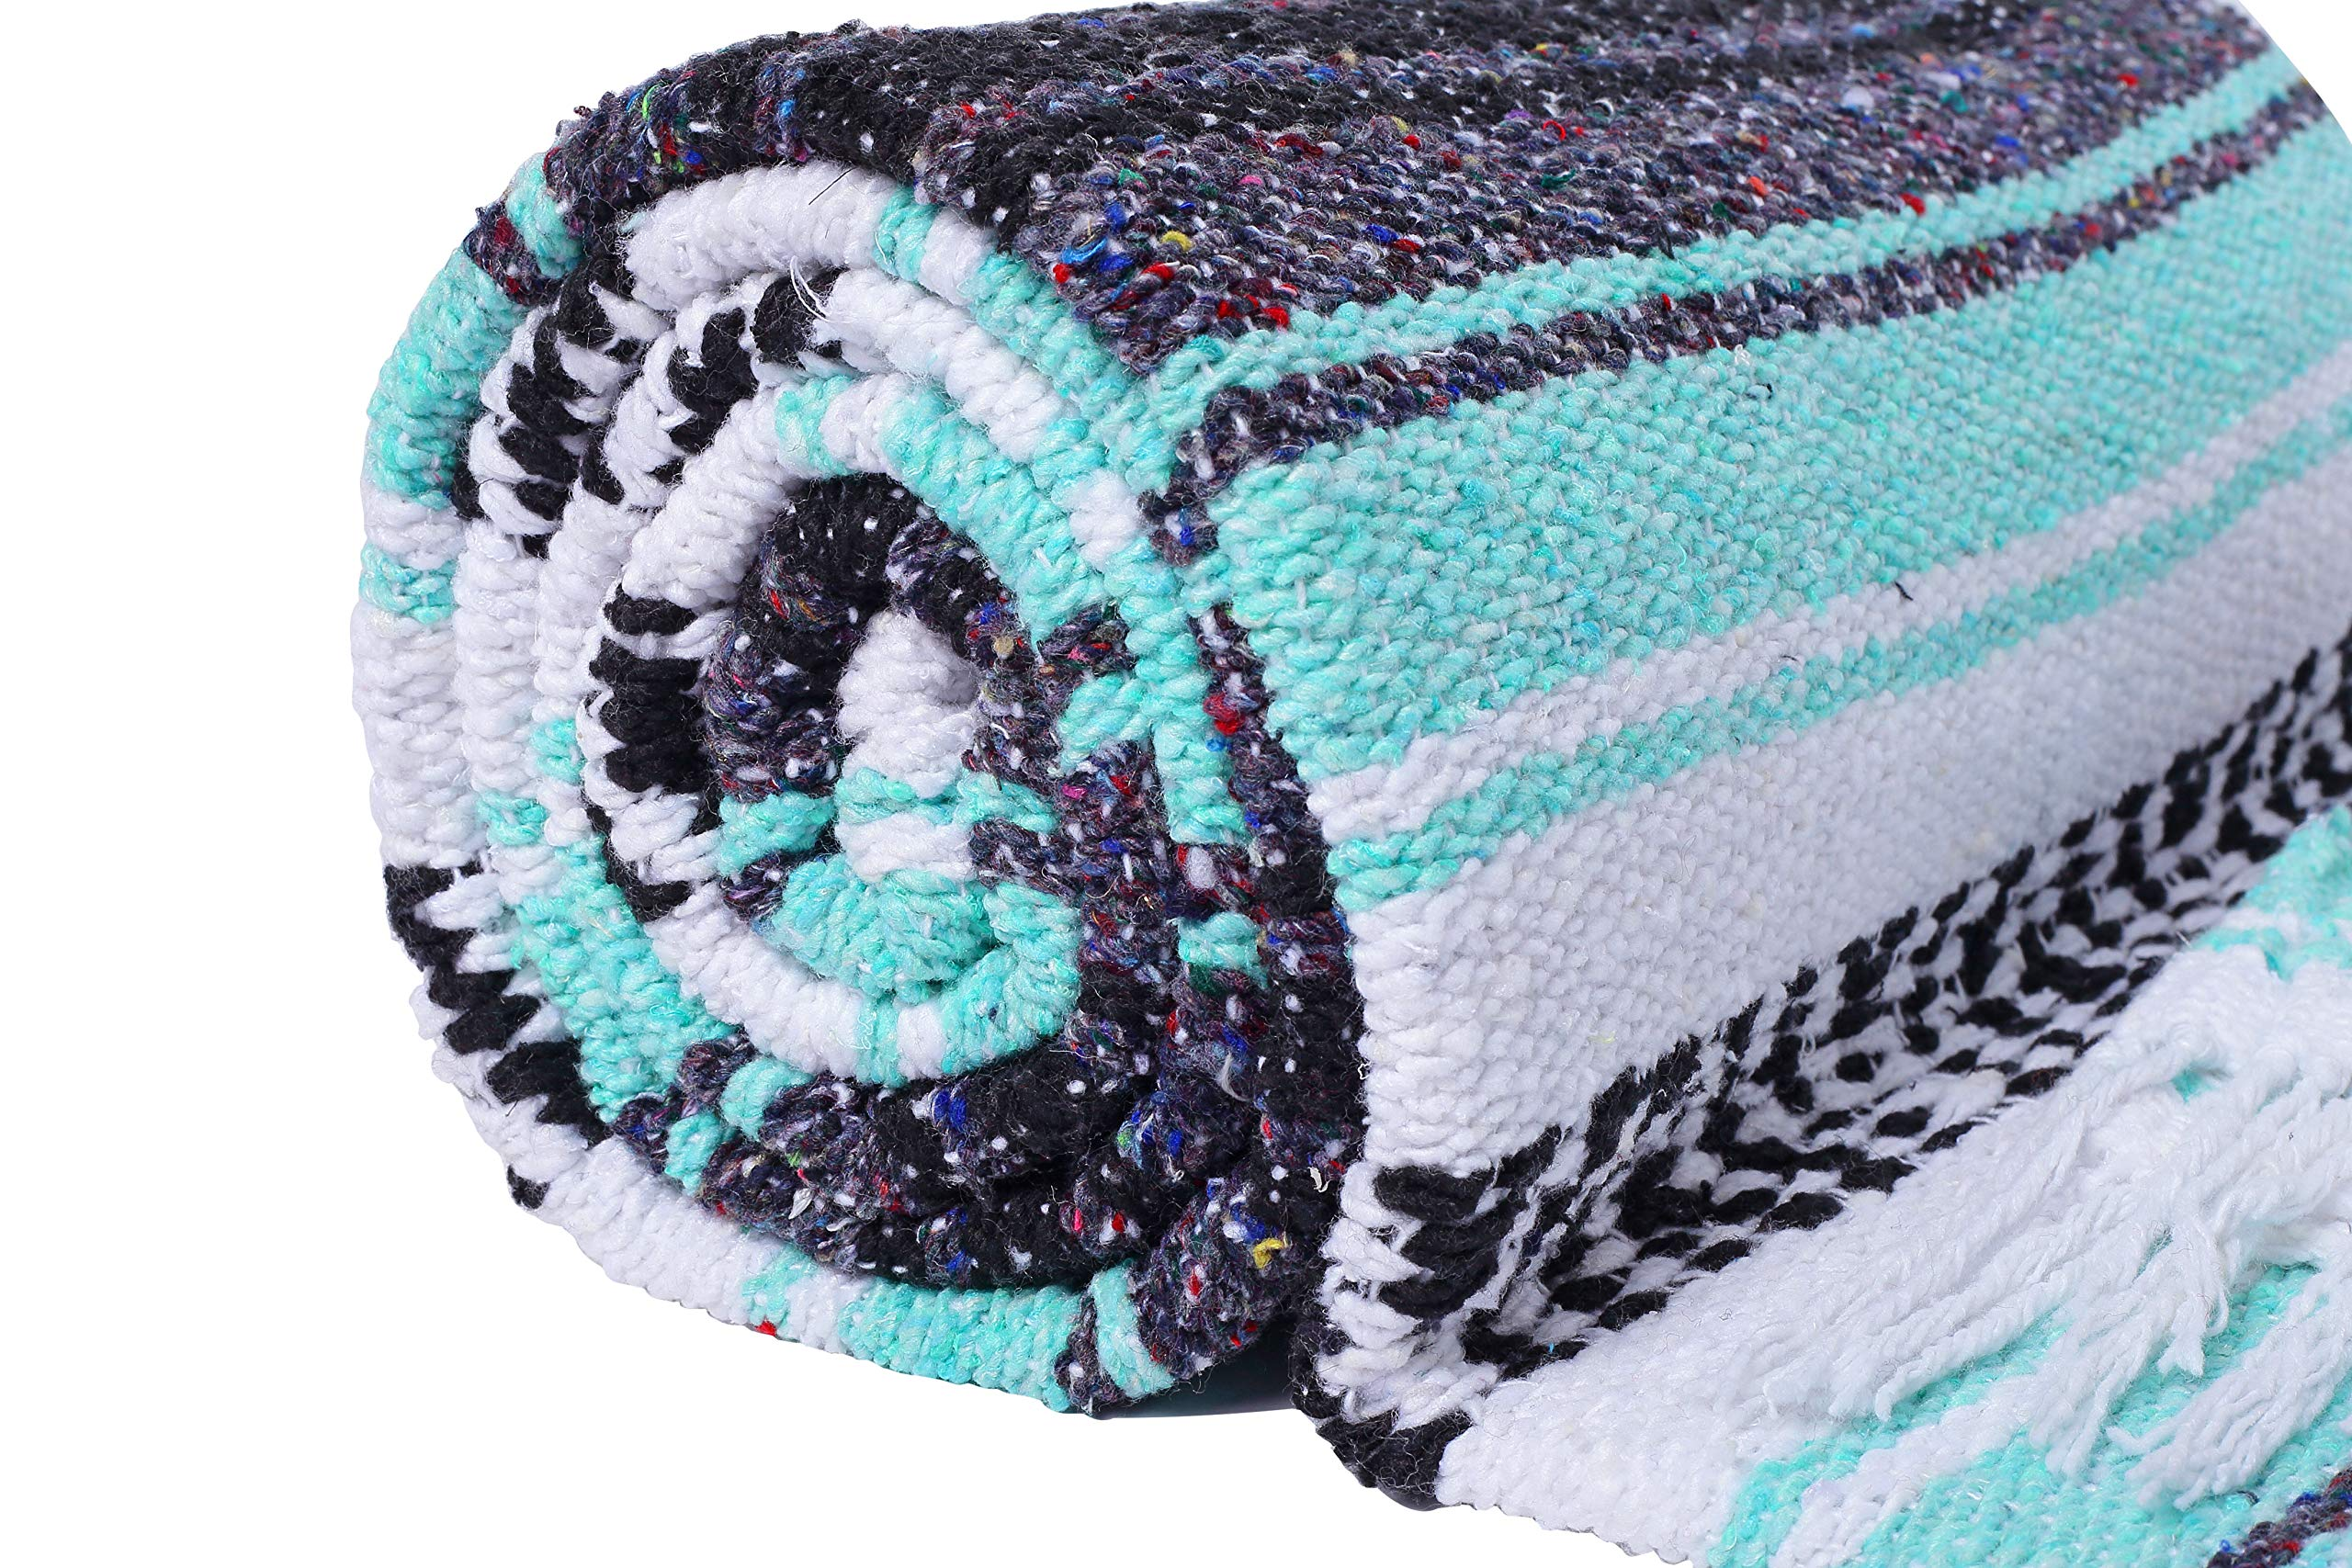 El Paso Designs Genuine Mexican Falsa Blanket - Yoga Studio Blanket, Colorful, Soft Woven Serape Imported from Mexico (Cool Mint & Gray) by El Paso Designs (Image #5)